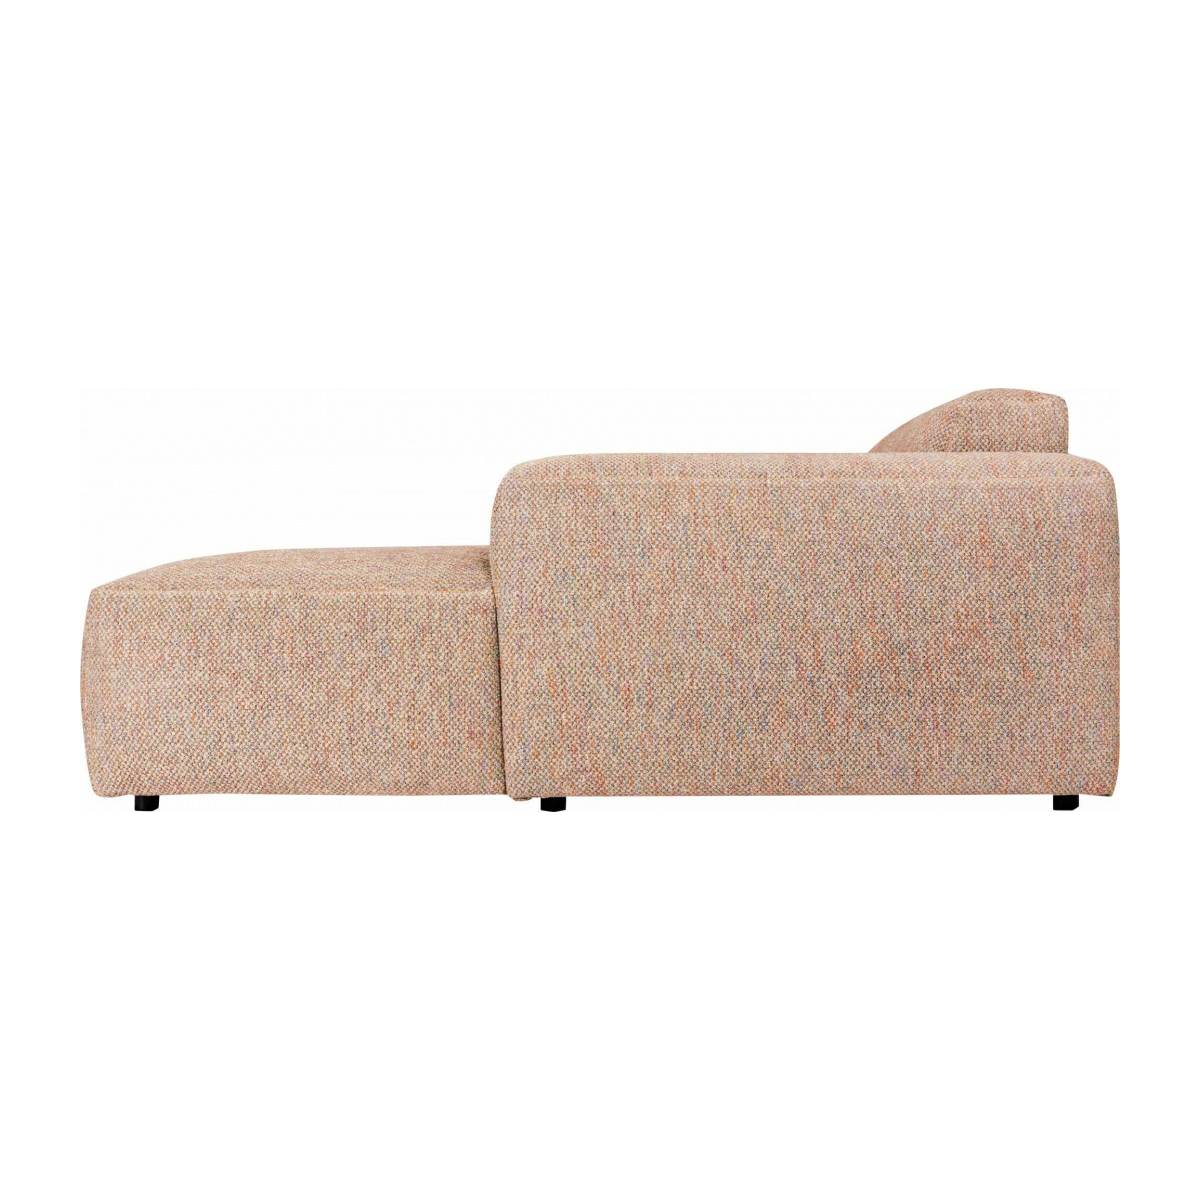 3 seater sofa with right chaise longue in Bellagio fabric, passion orange n°6